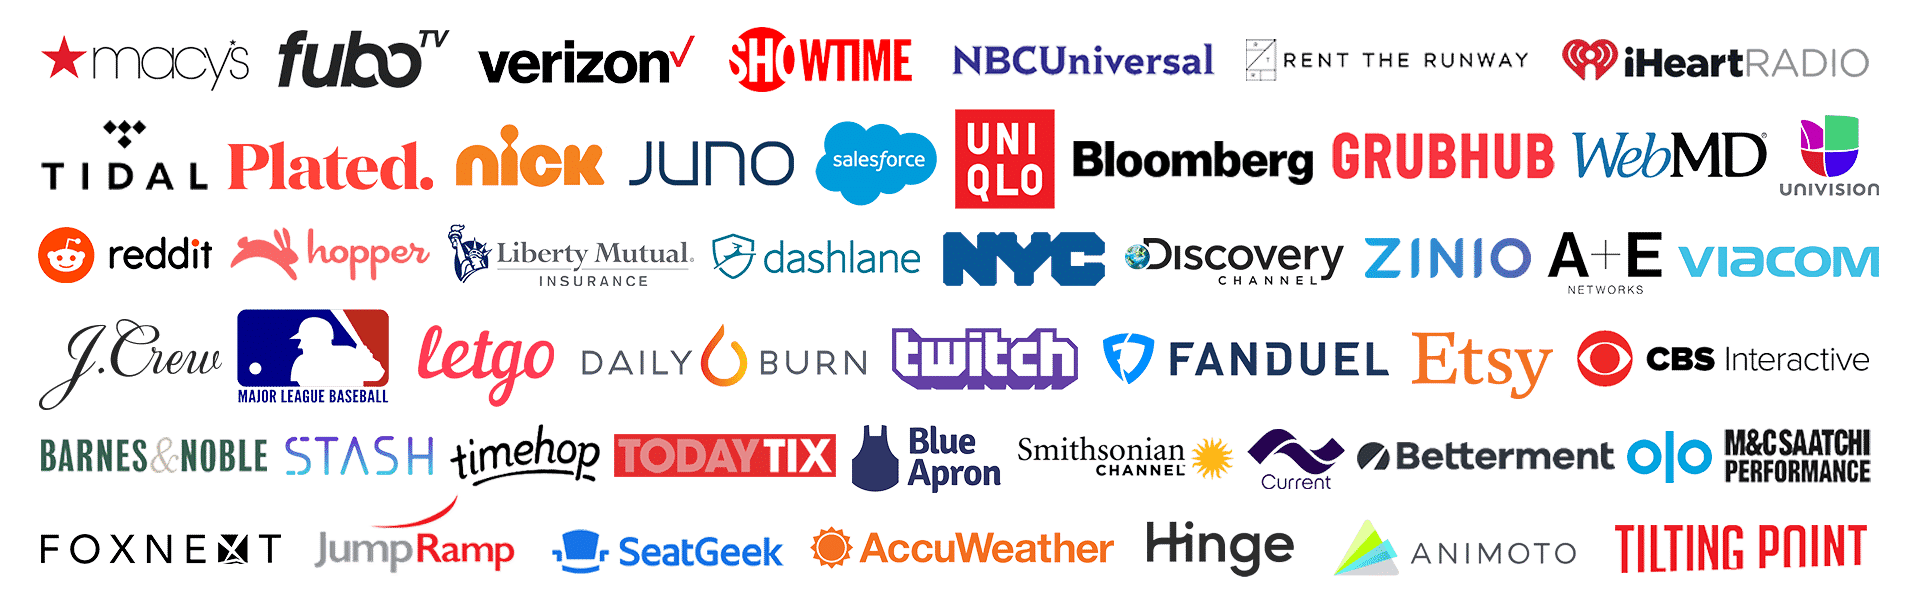 App Growth Summit NYC 2019 - App Growth Summit